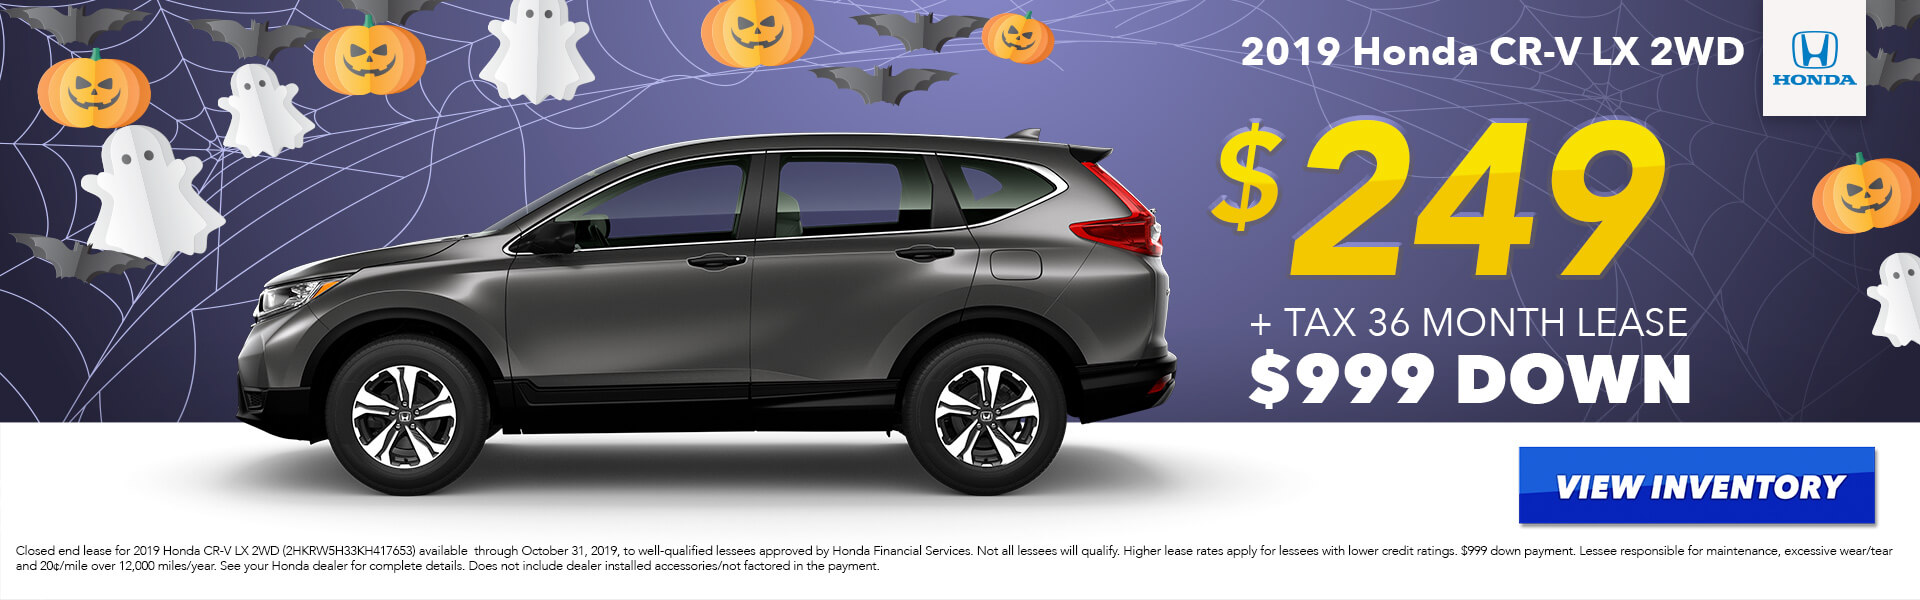 2019 Honda CR-V LX Lease for $249